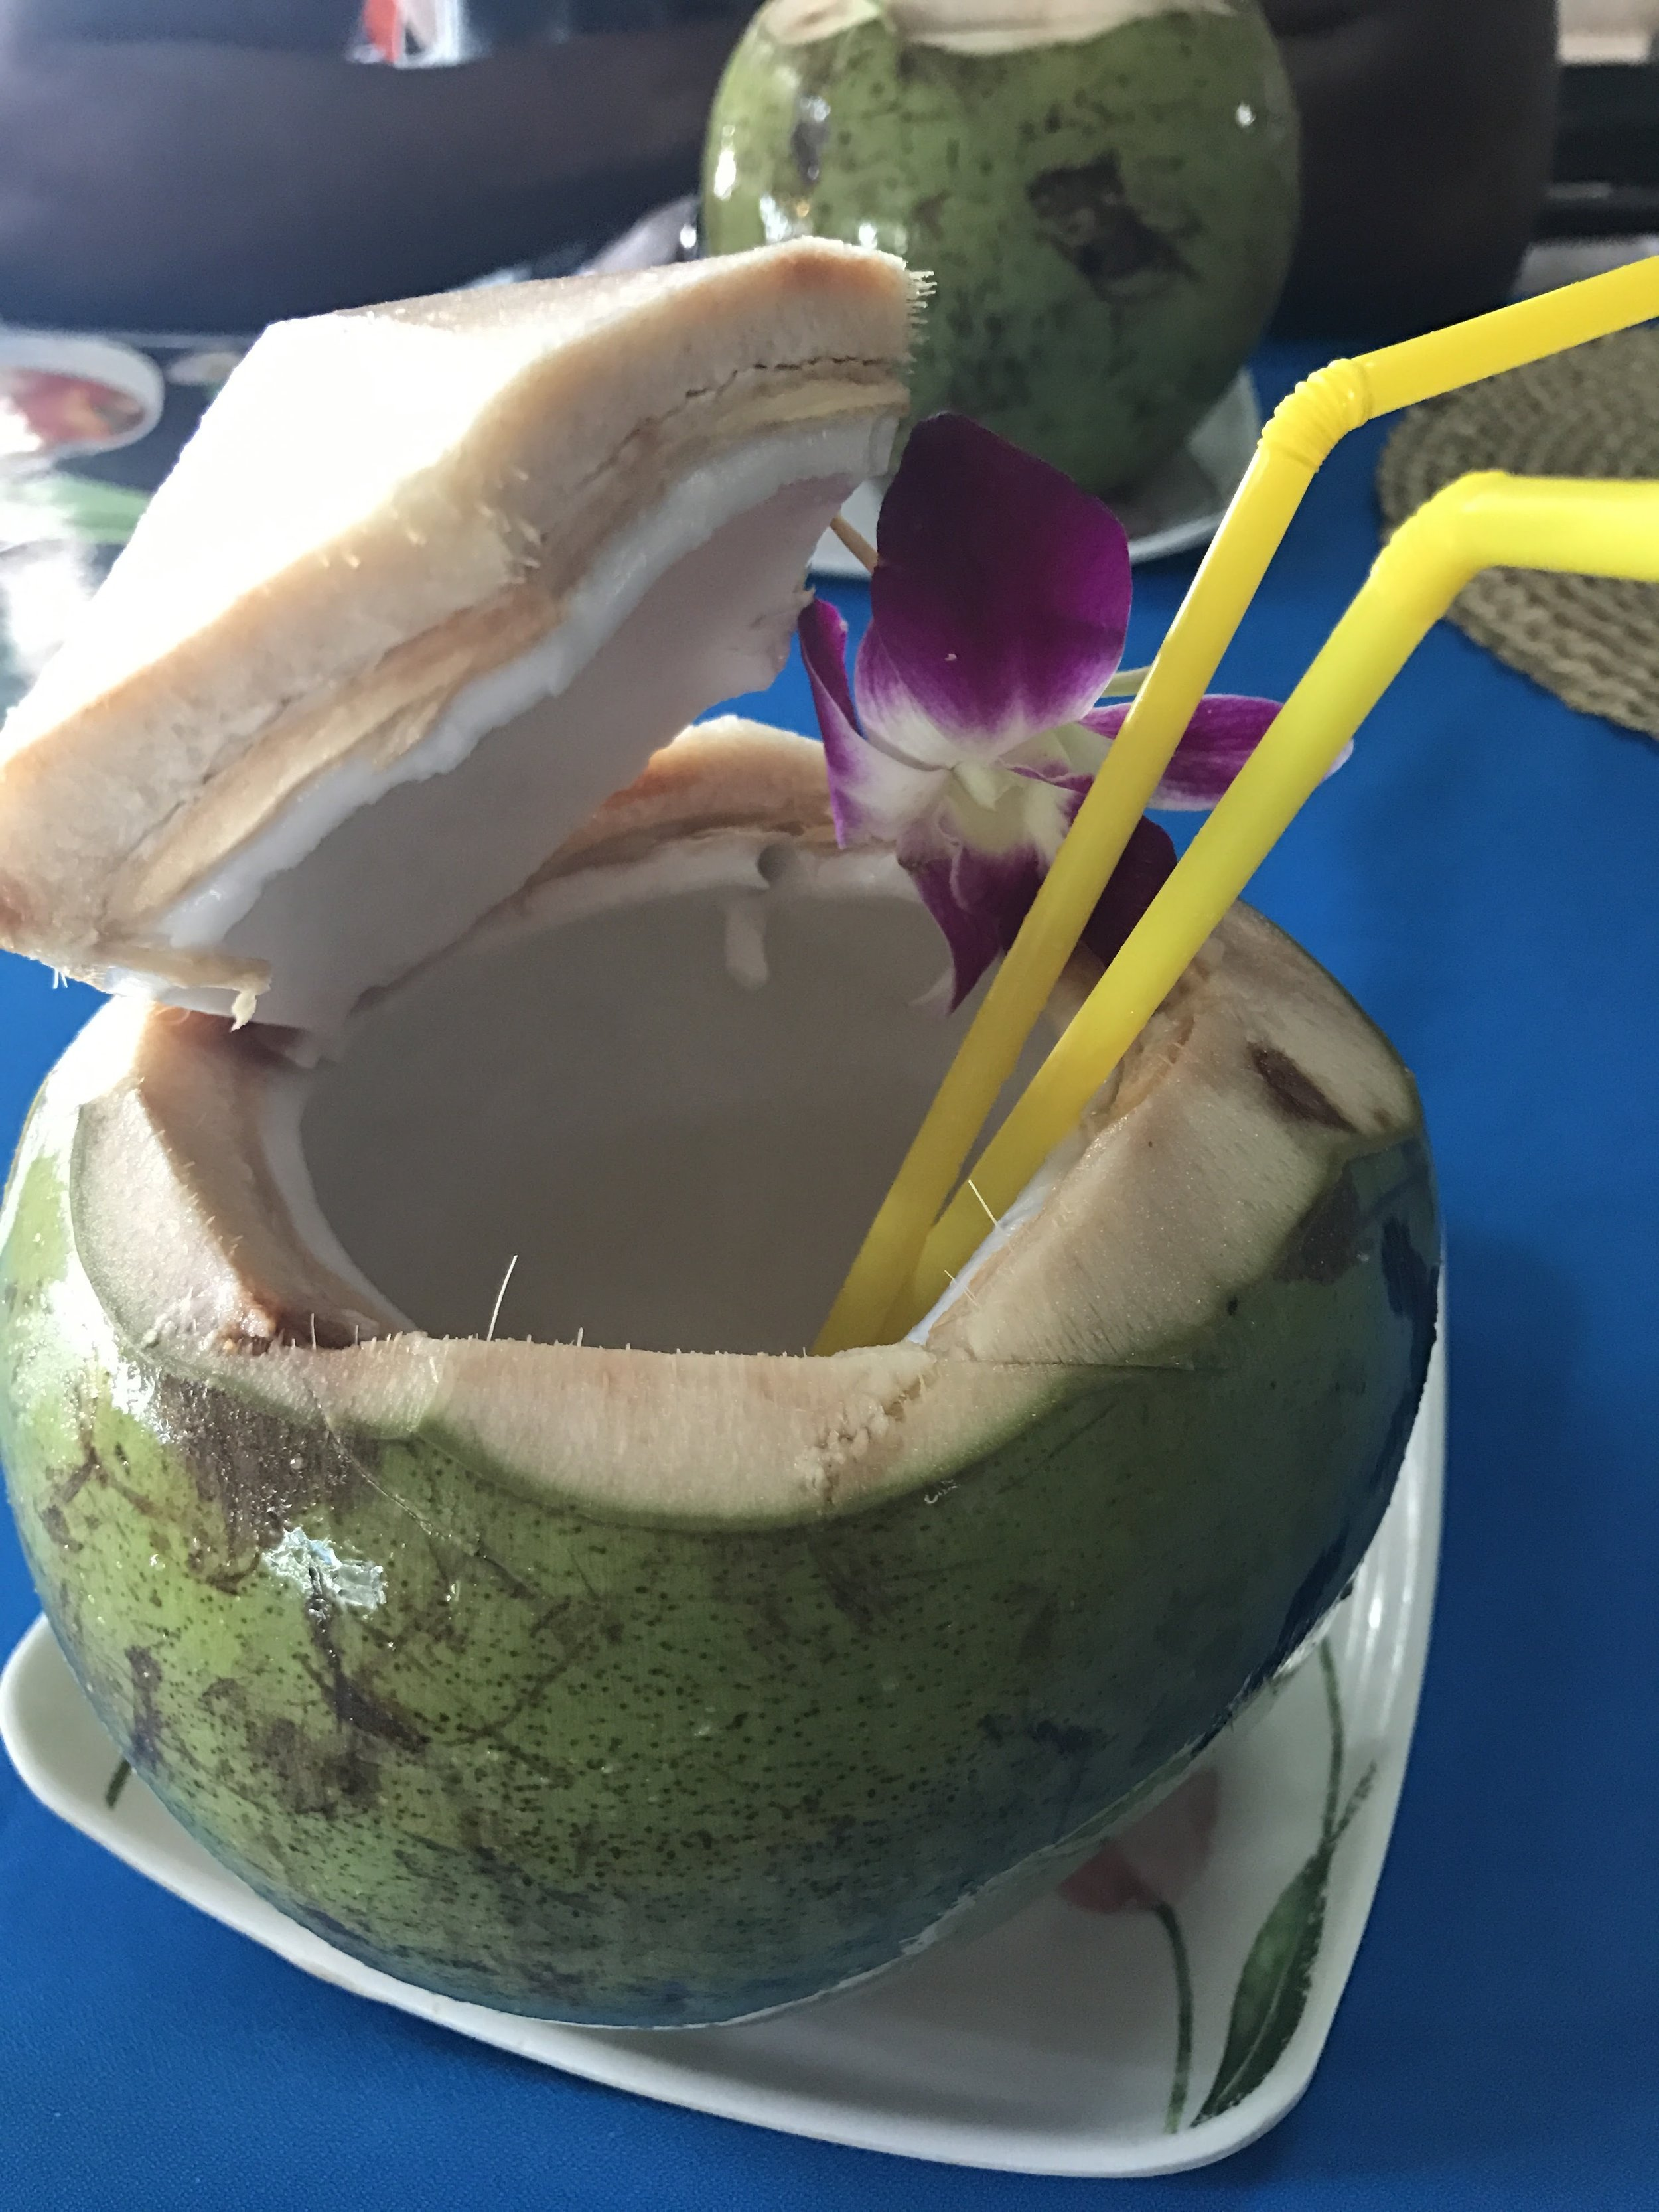 The coconuts are to die for! Here is one that we had at a local restaurant on the beach.